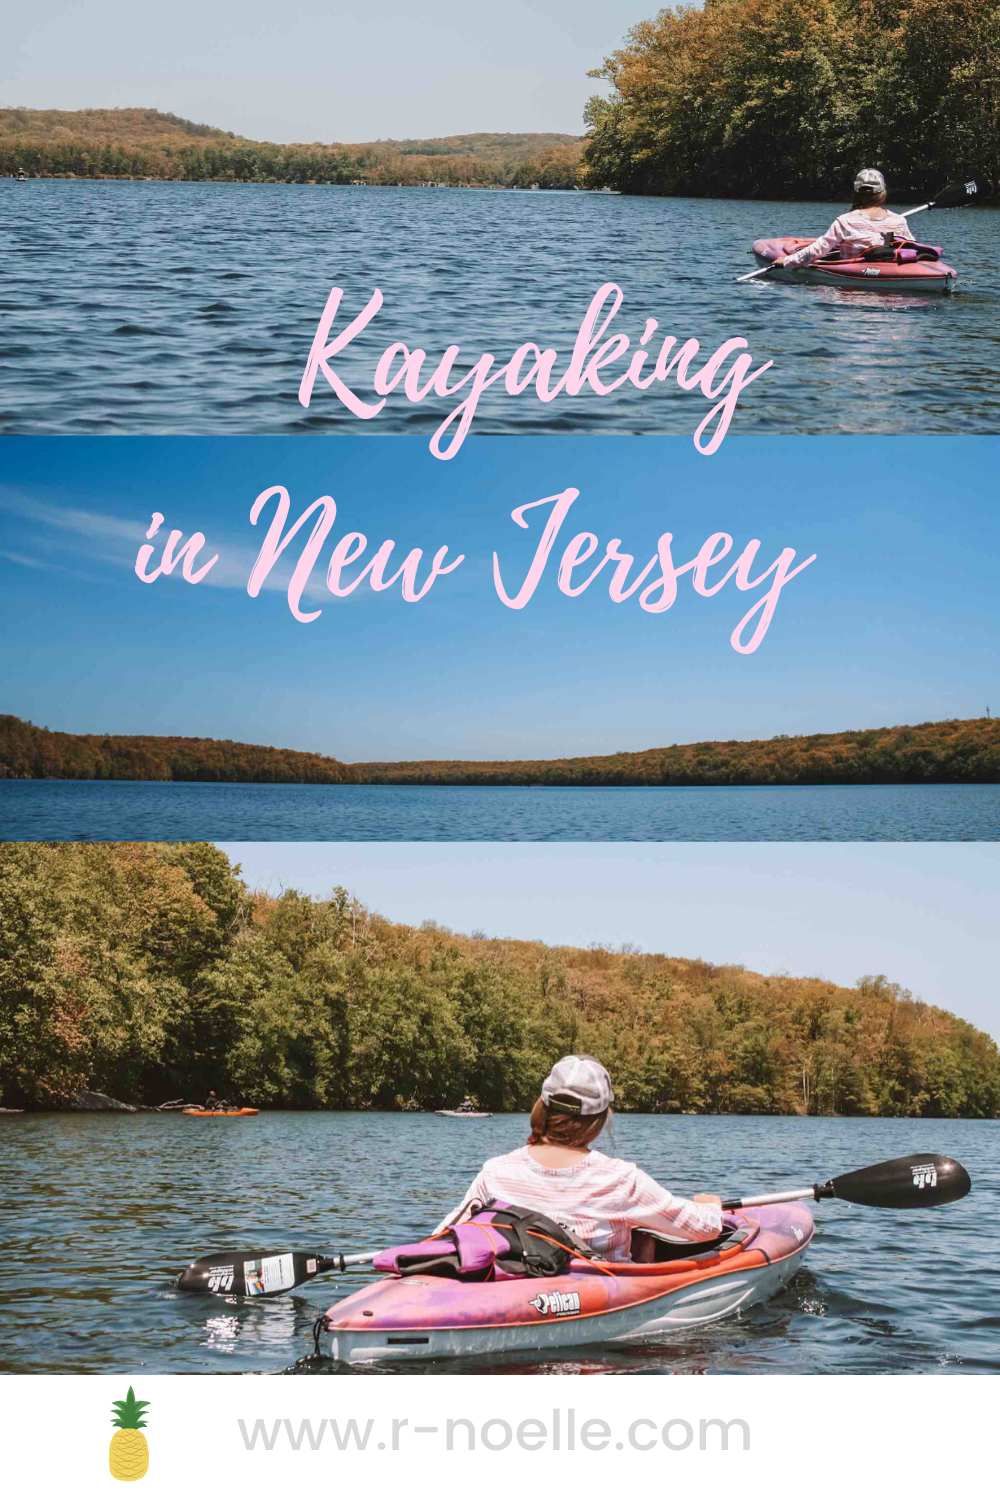 I've gone to different kayaking spots in Northern NJ and I highly recommend you check out these spots! This summer is all about exploring the local area, and I think these spots you'll want on your list.